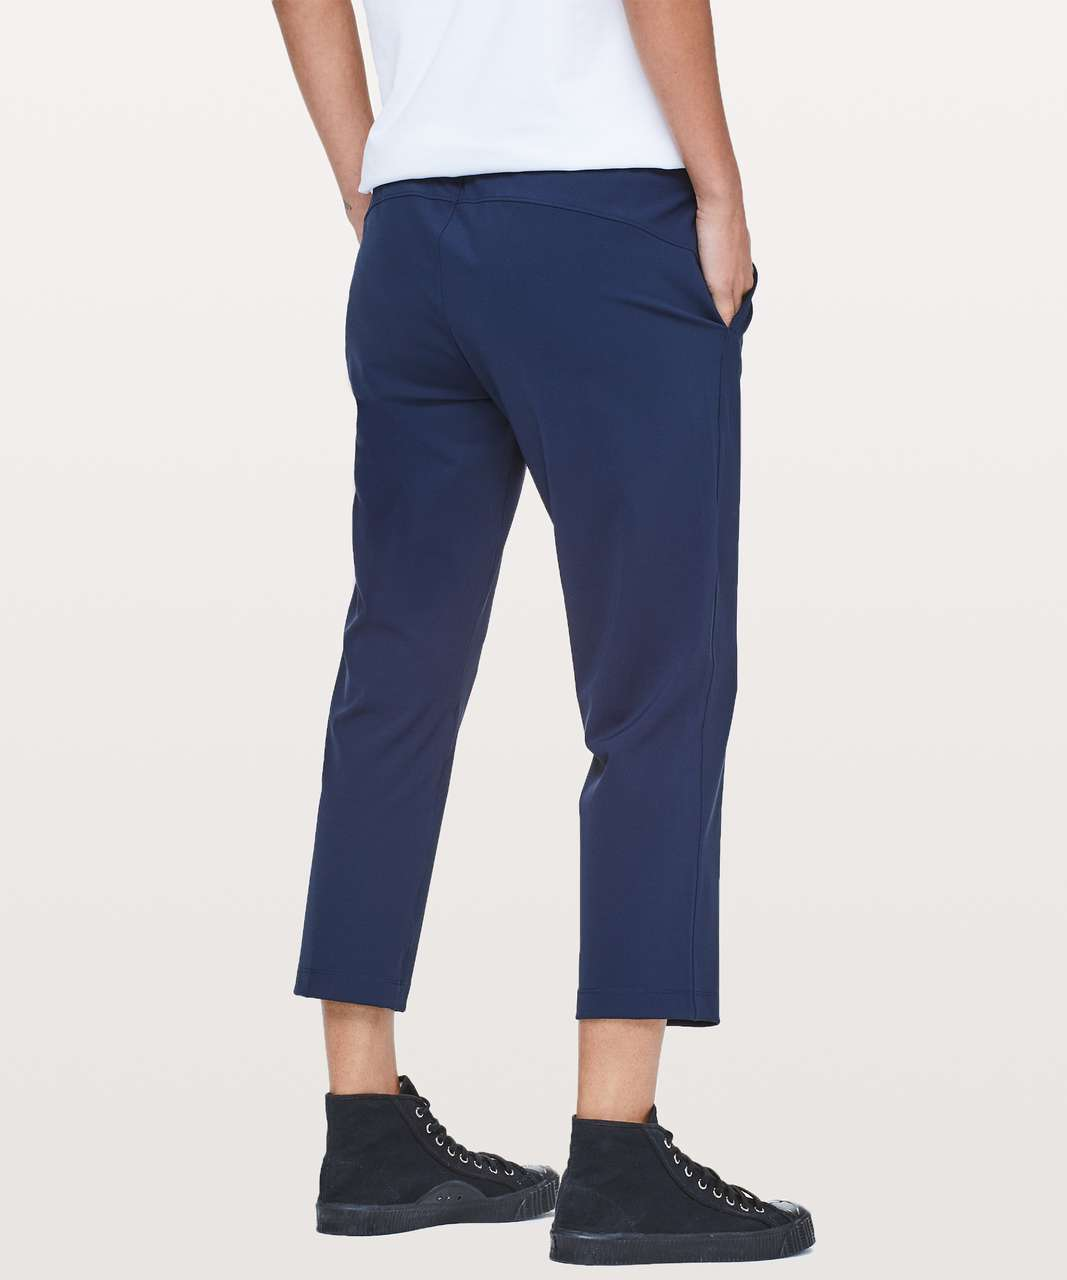 """Lululemon On The Fly Crop *23"""" - True Navy (Second Release)"""